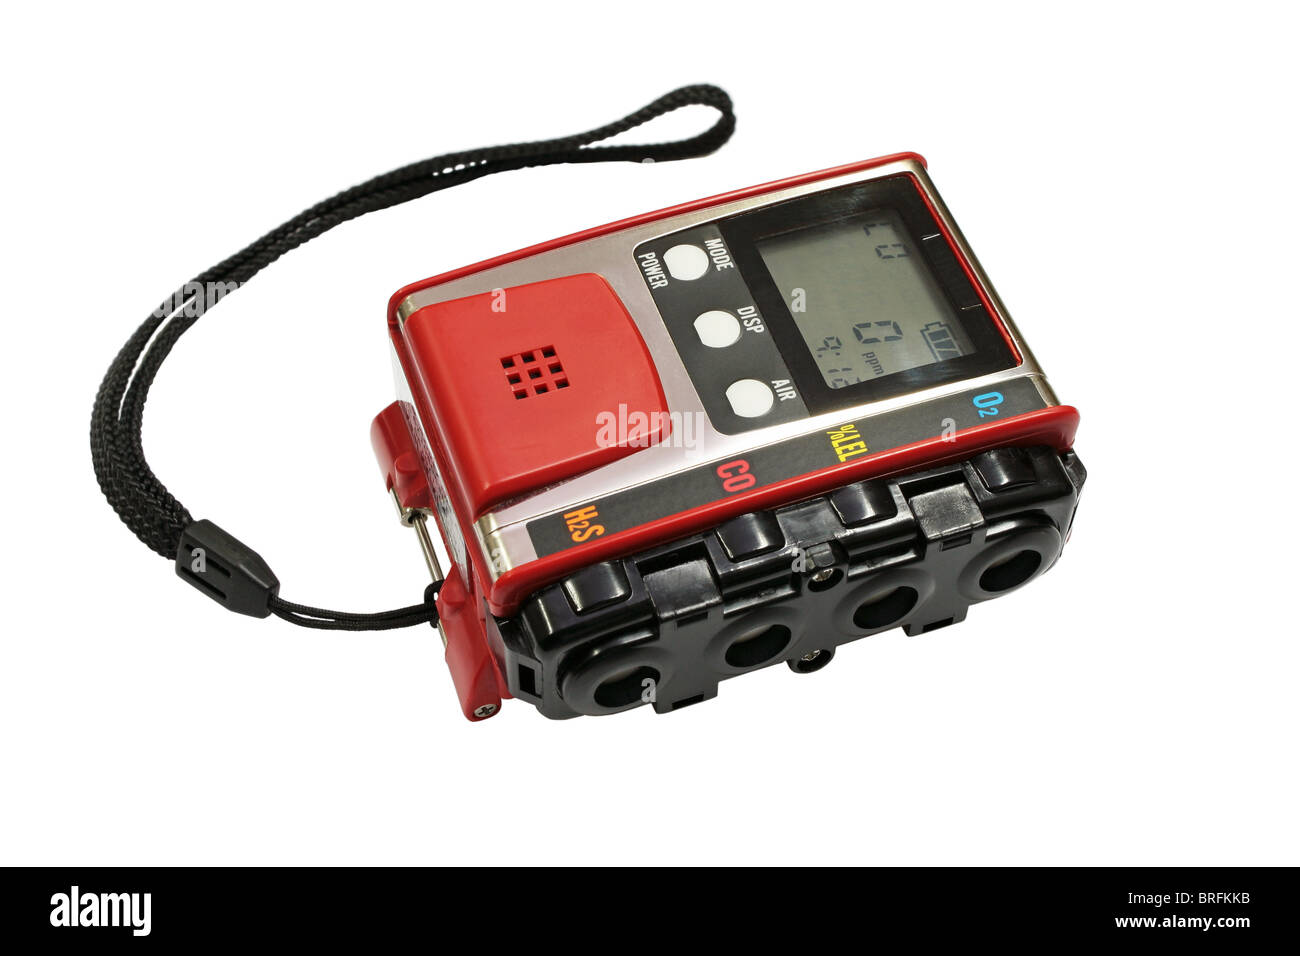 Gas analyzer. Gas analyzer, a device for measuring the concentration of explosive gases. - Stock Image